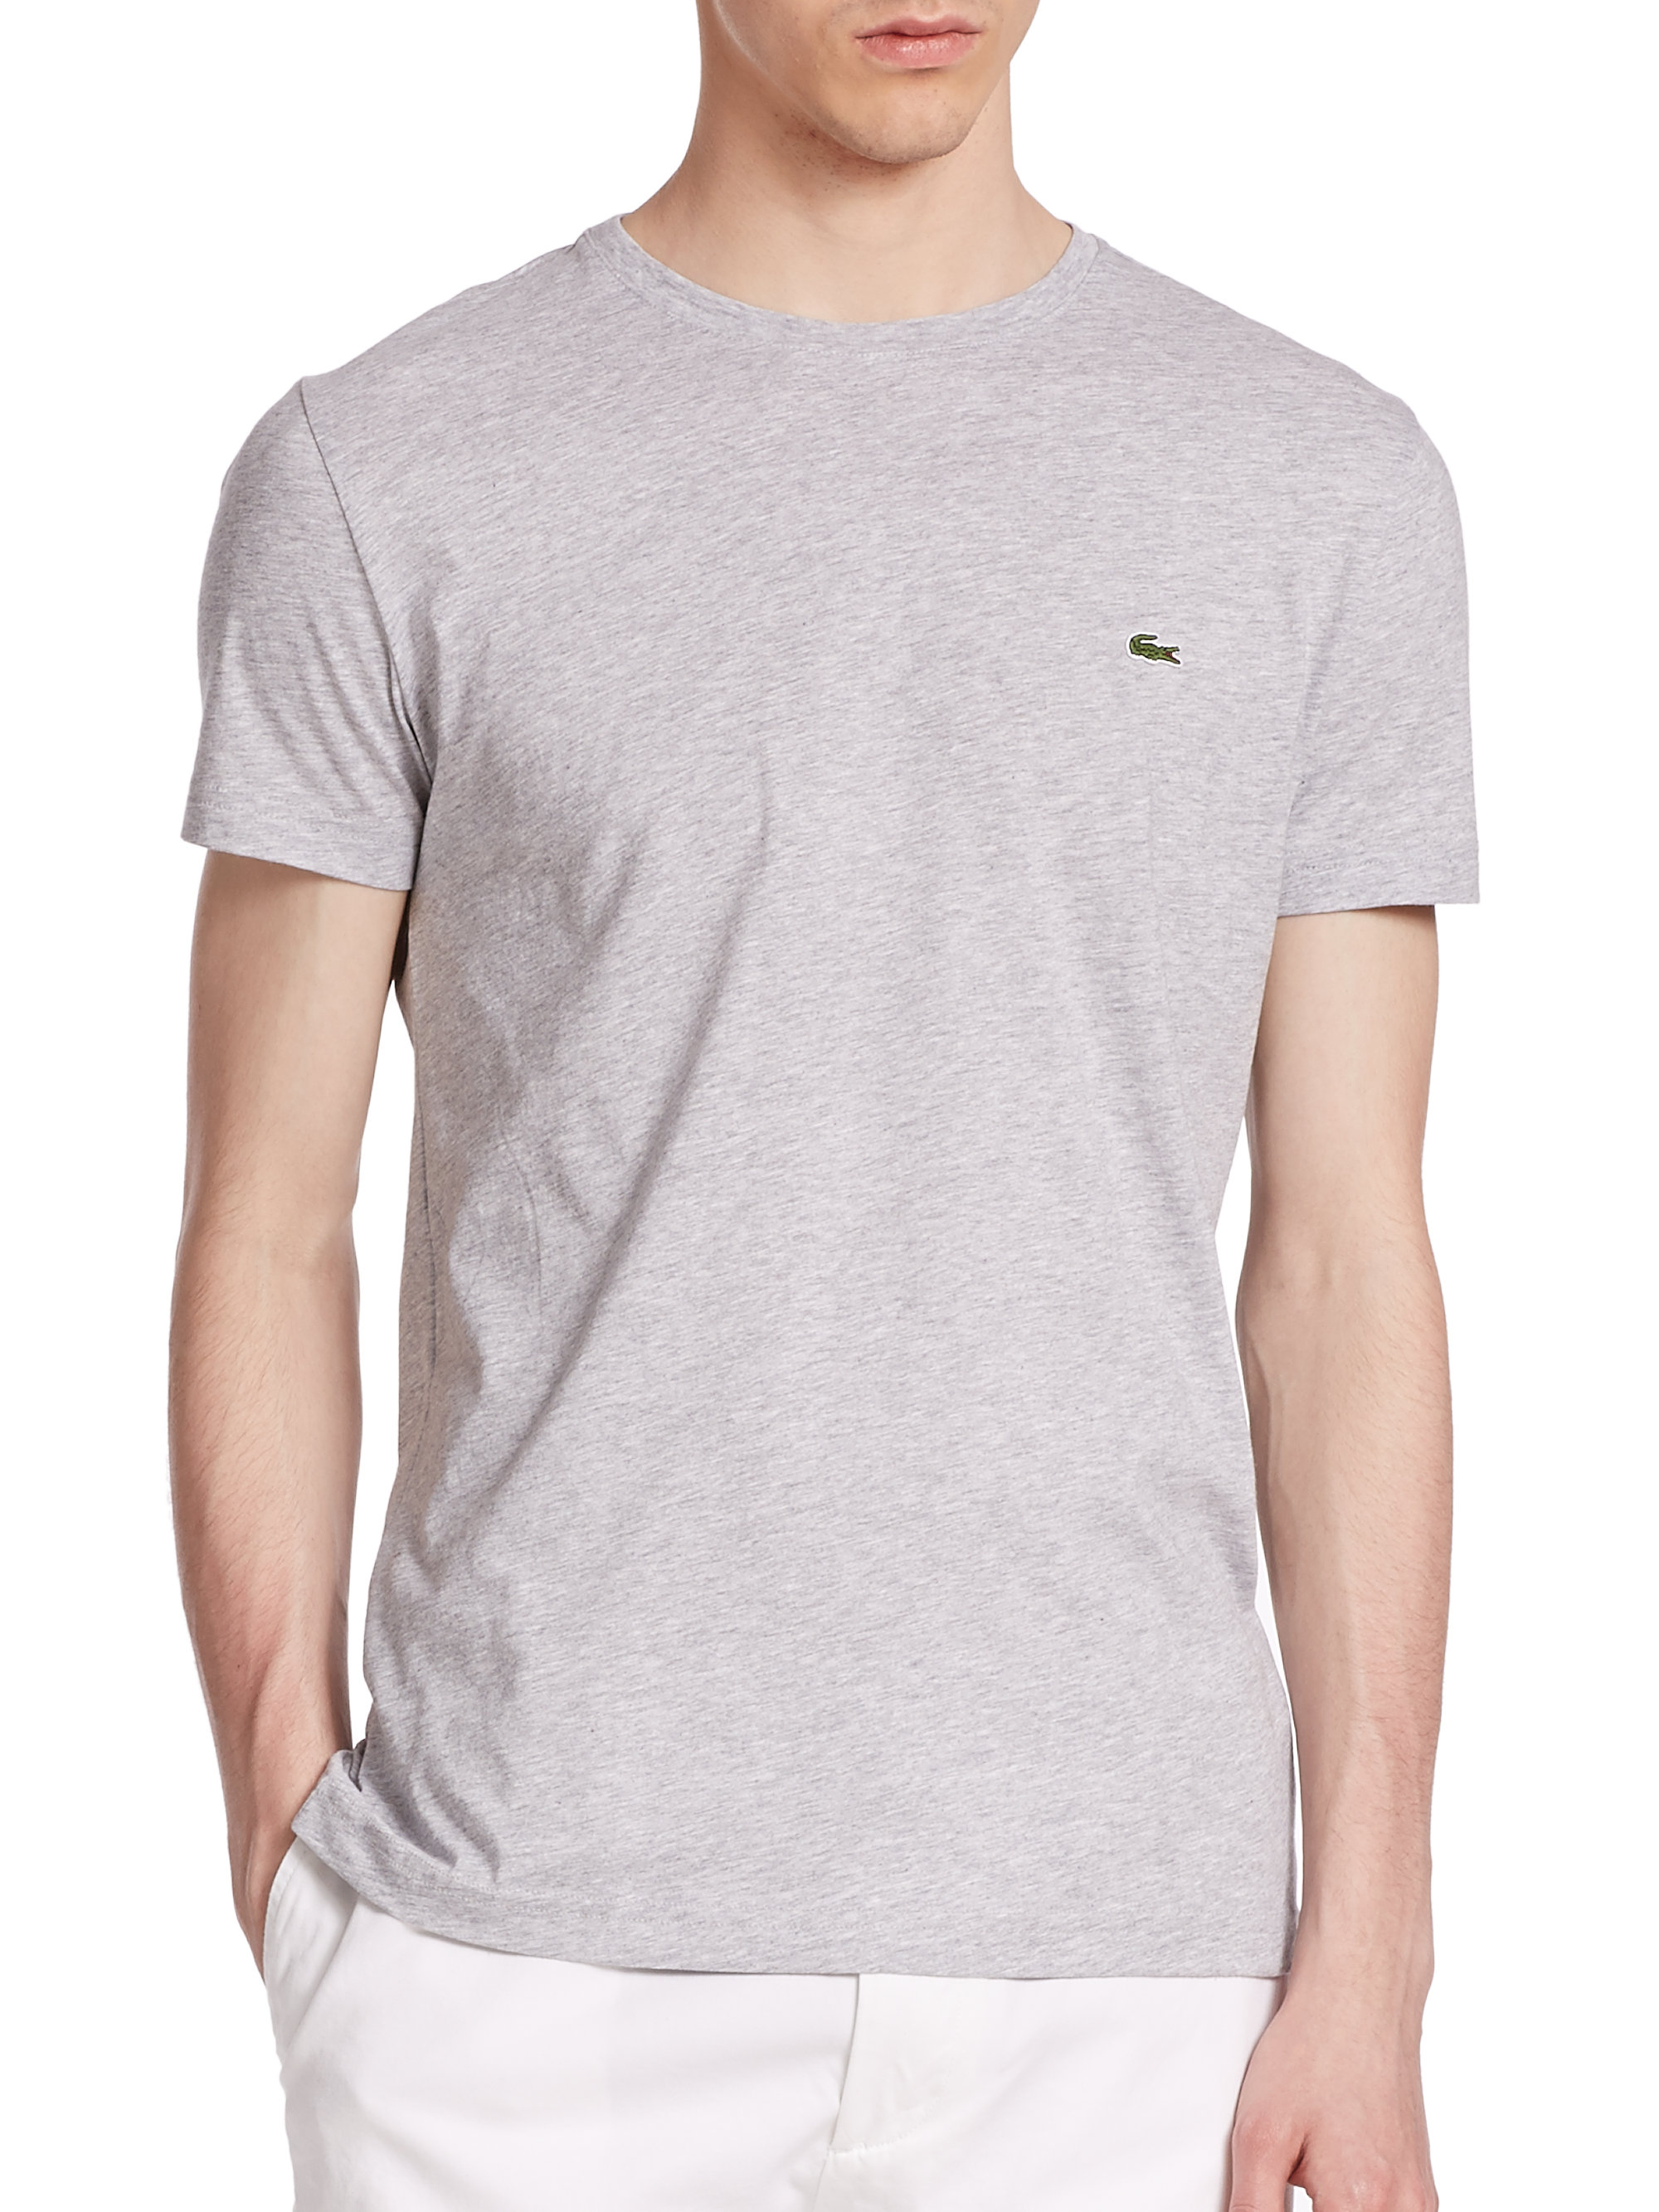 Lacoste pima cotton tee in gray for men lyst for Pima cotton tee shirts